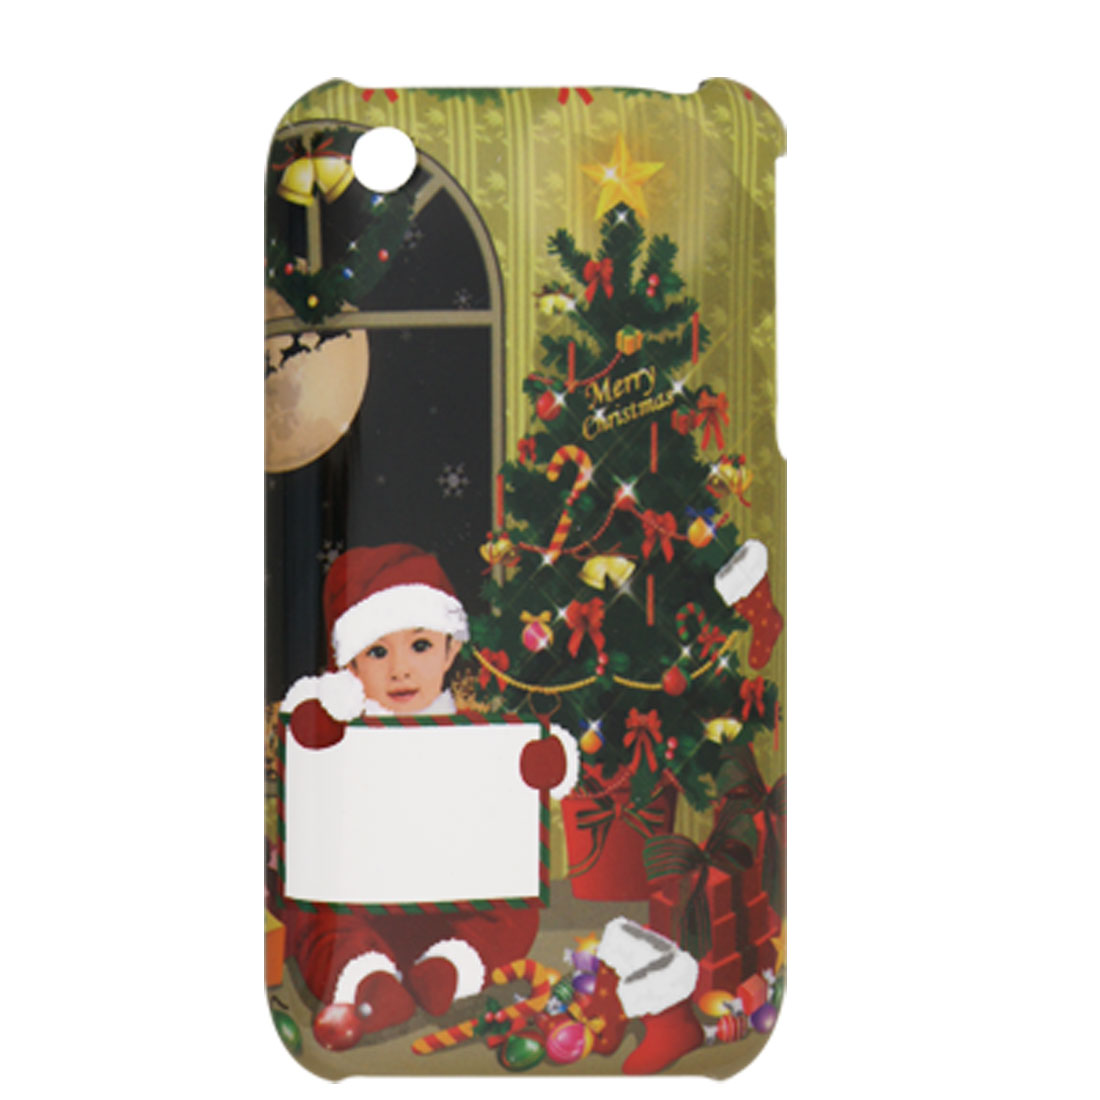 Christmas Tree Gift Plastic Back Cover for iPhone 3G